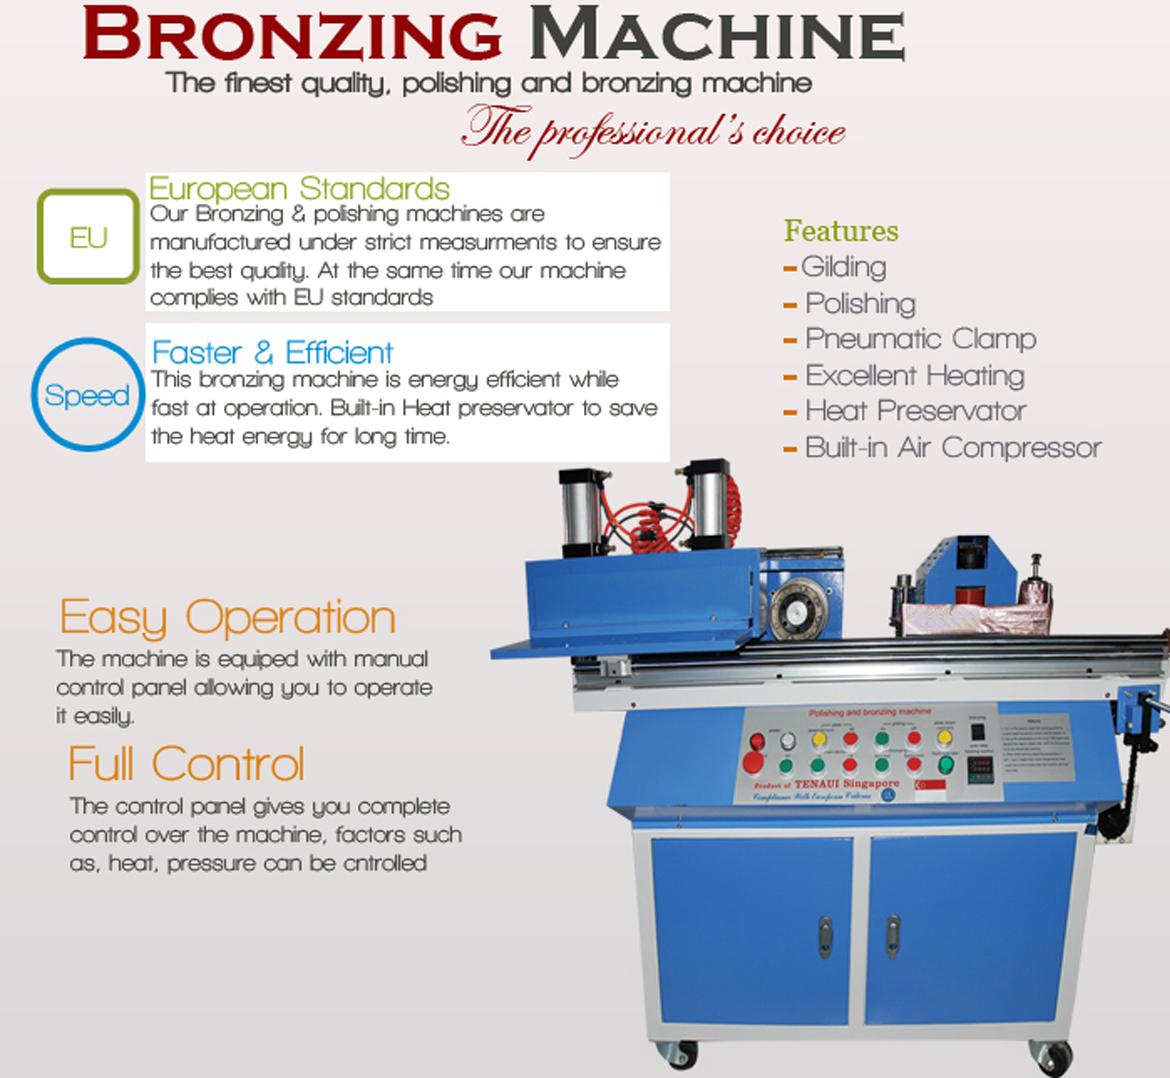 bronzing-machine-tenaui1